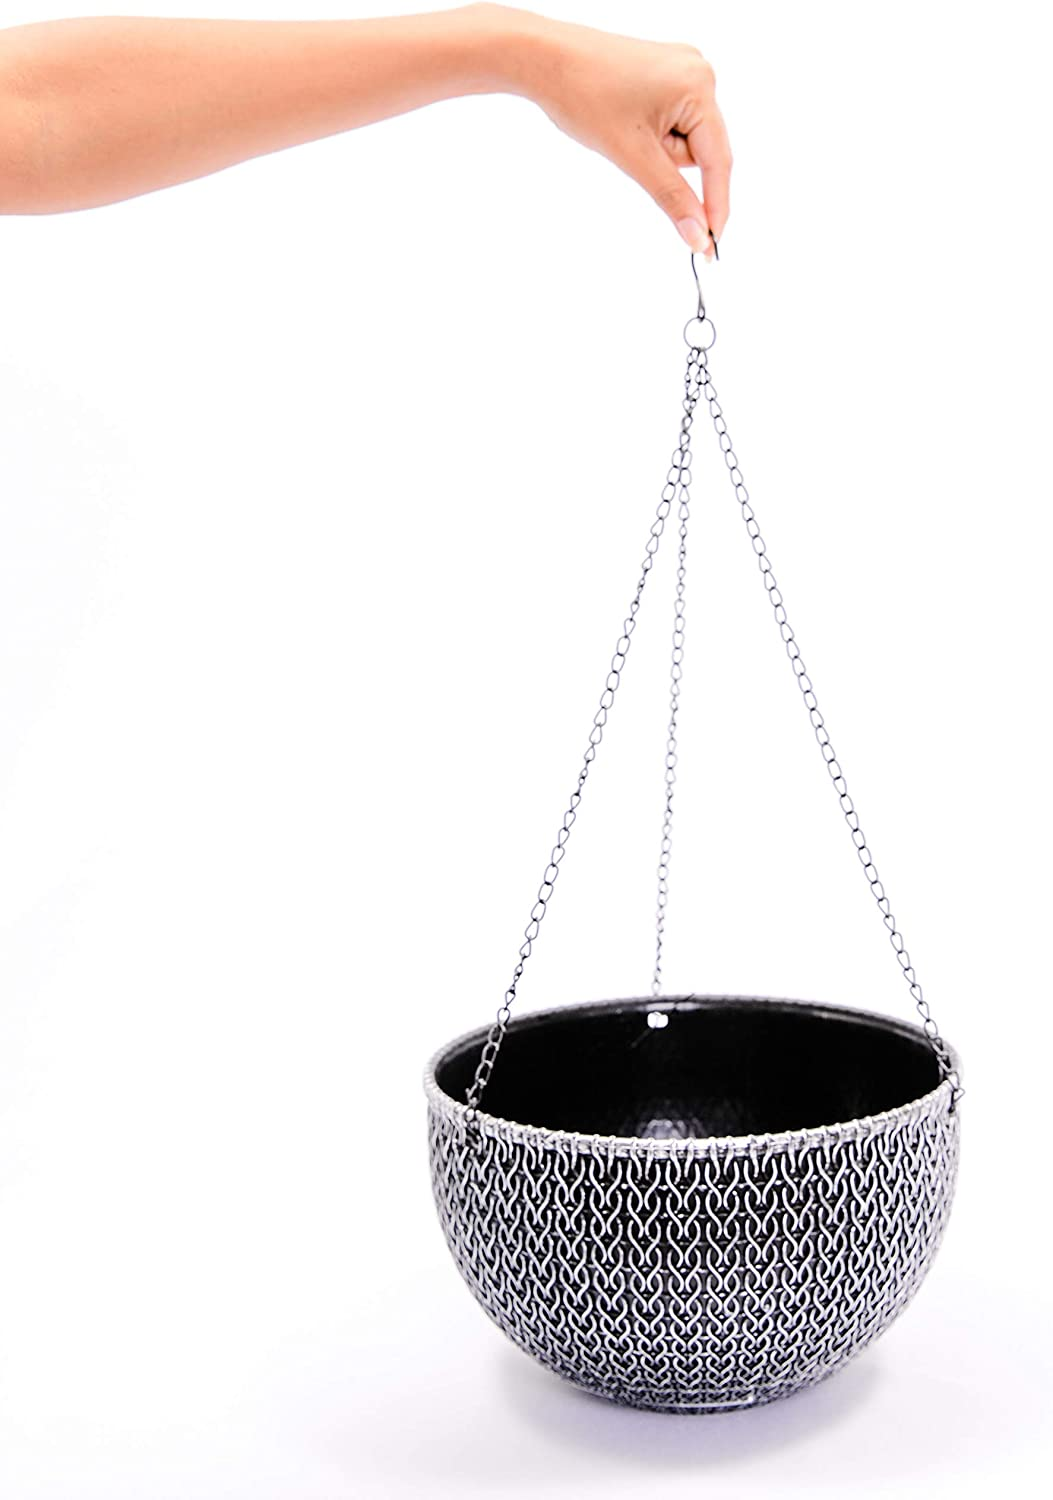 Rustic Hanging/Base Combo Planter Antique Look Plastic Flowerpot Nursery for Indoor, Outdoor, Garden Patio Office Ornaments Home Decor Use Long Lasting Reusable Light Weight (Silver-L)